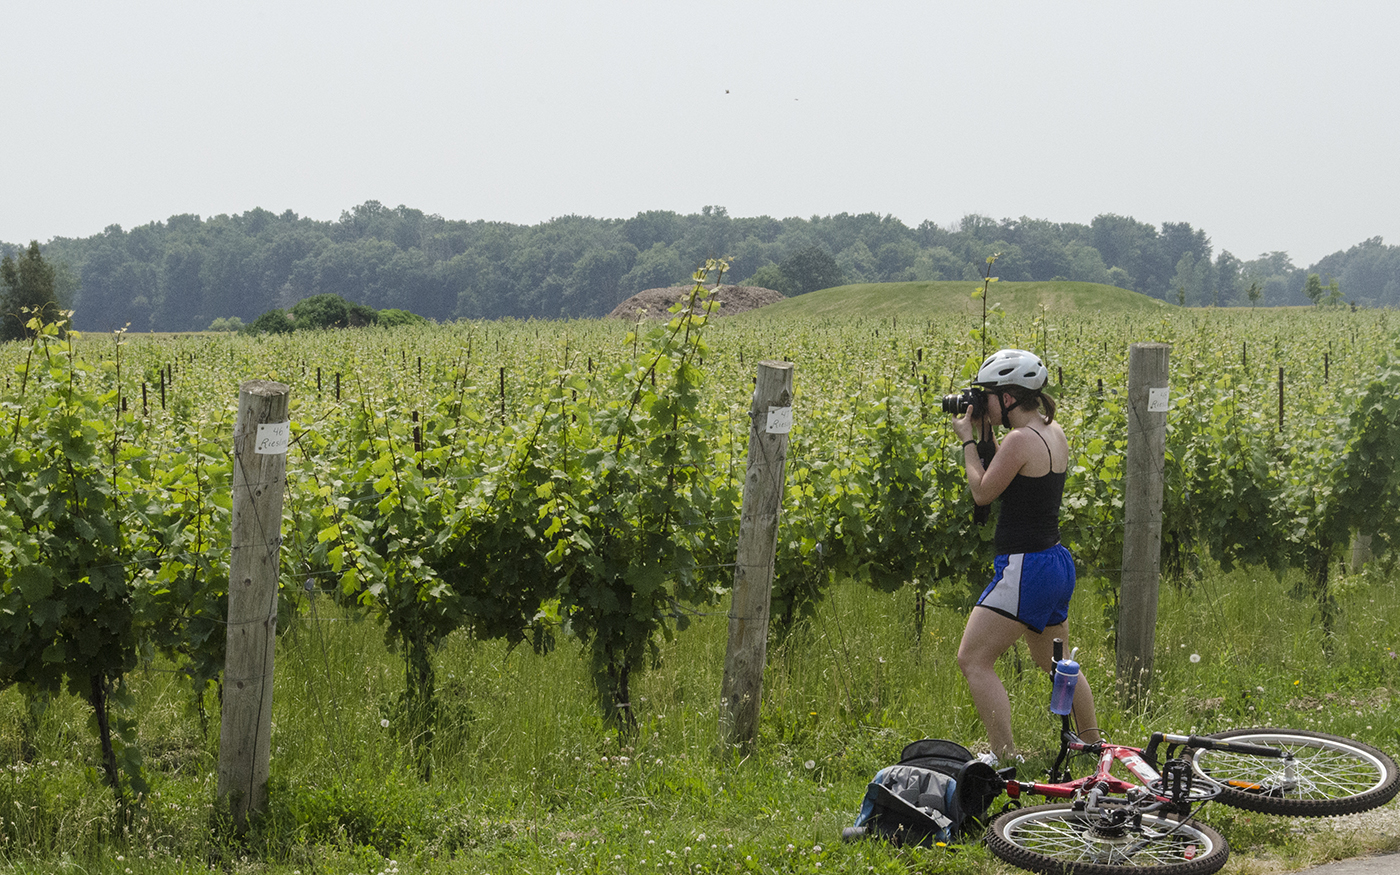 A cyclist takes a stop to photograph the scenery on a Wine Trail Ride cycling tour through the Lake Erie North Shore.